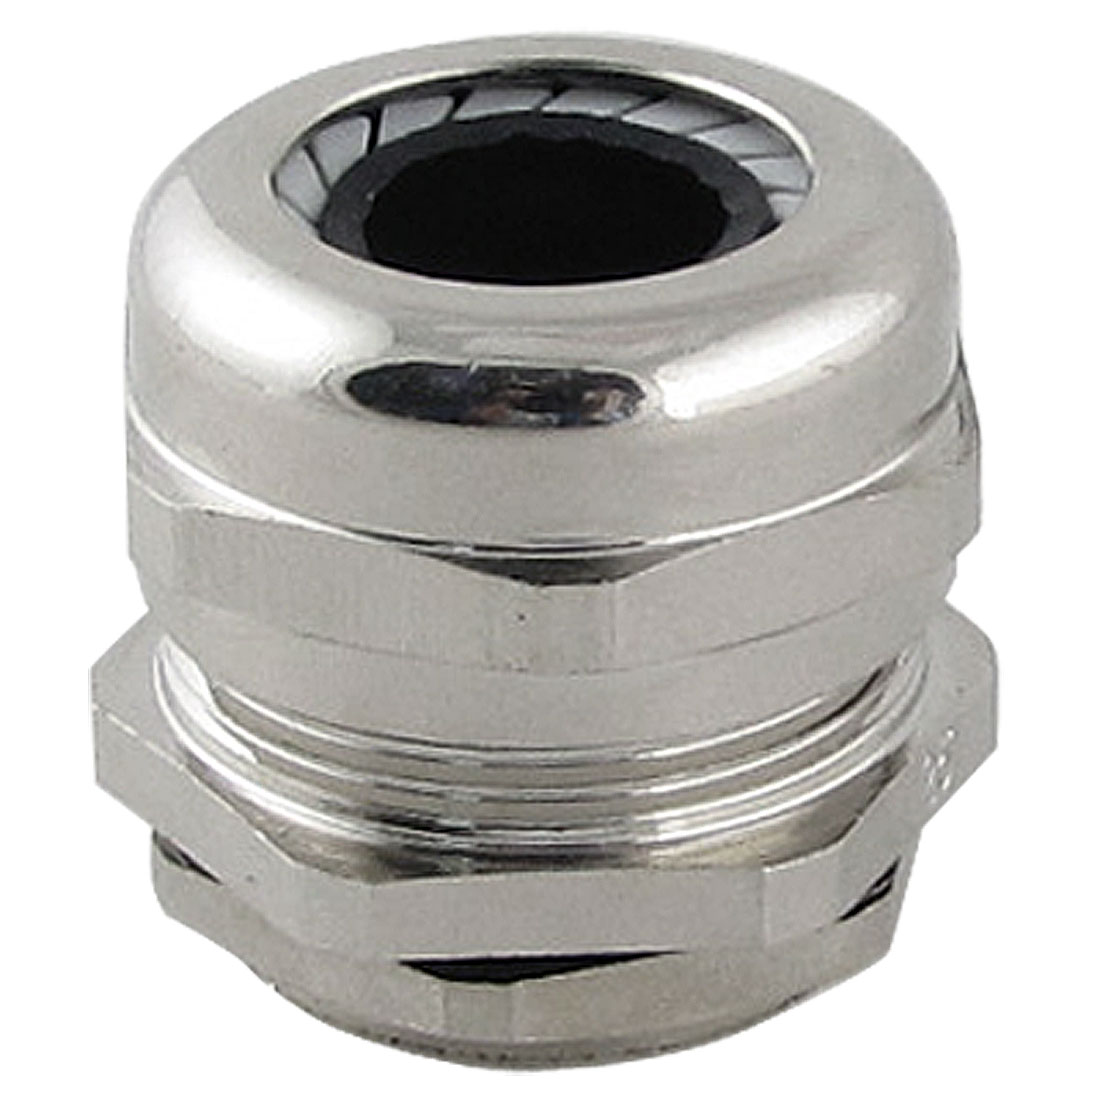 Silver Tone Stainless Steel 10.0-14.0mm M25 Cable Gland with Locknut